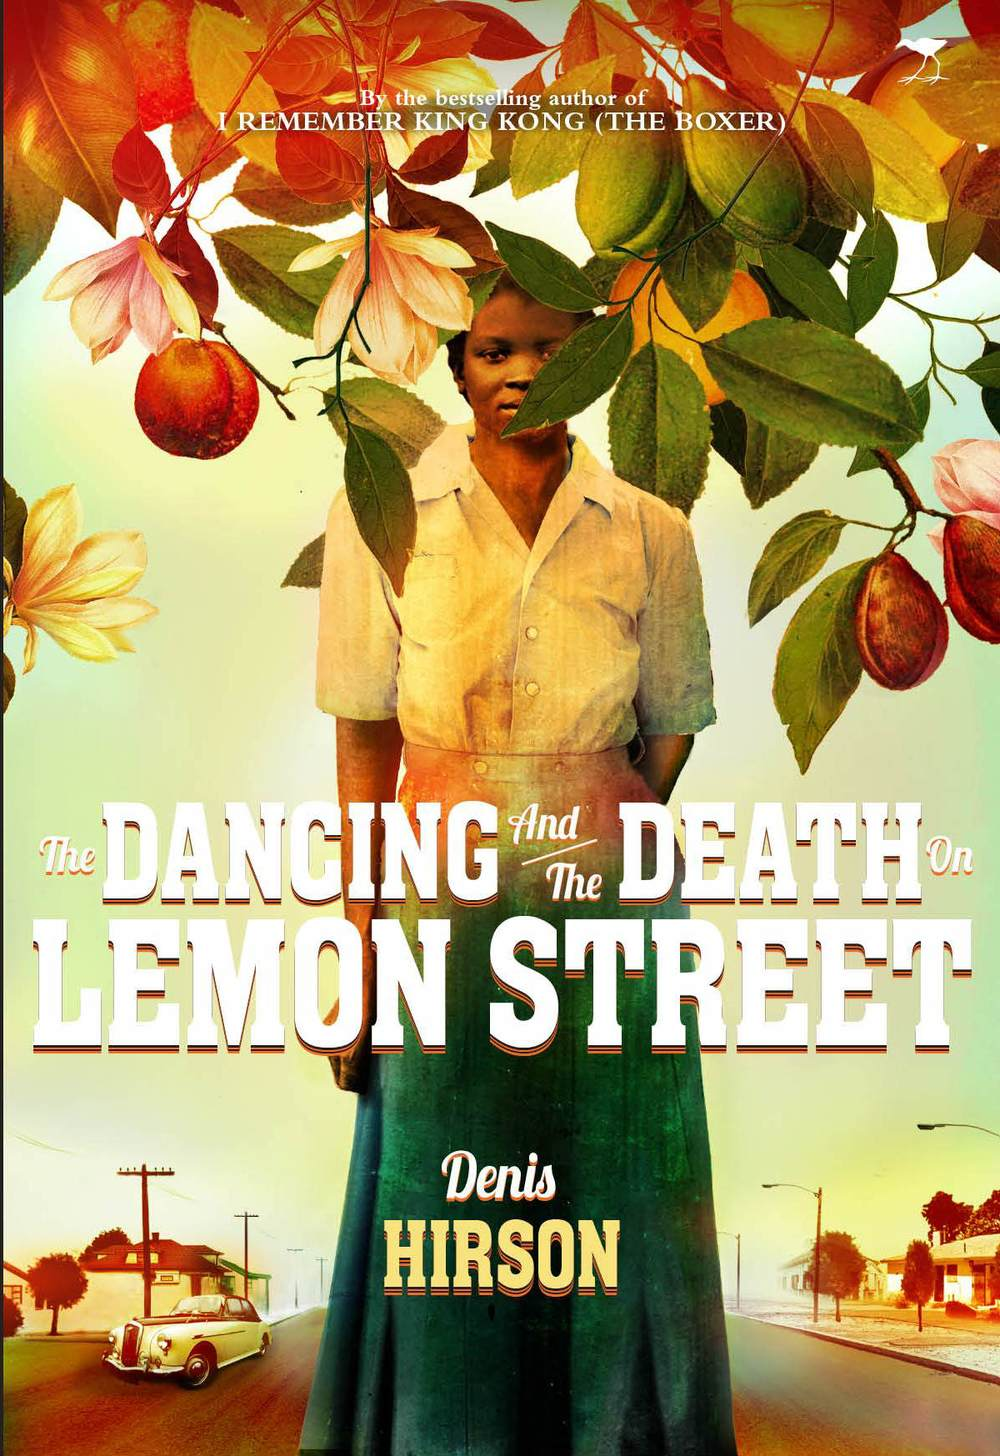 THE DANCING AND THE DEATH ON LEMON STREET Literary Fiction, 276 pages Jacana Media (South Africa) - August 2011 Shortlisted for Commonwealth Book Prize 2012 The lives of people on Lemon Street, hidden in a leafy suburb of a 1960s South Africa wracked by uncertainty. 'An elegant bittersweet novel.' -- Hadrien Diez, Africabookclub.com